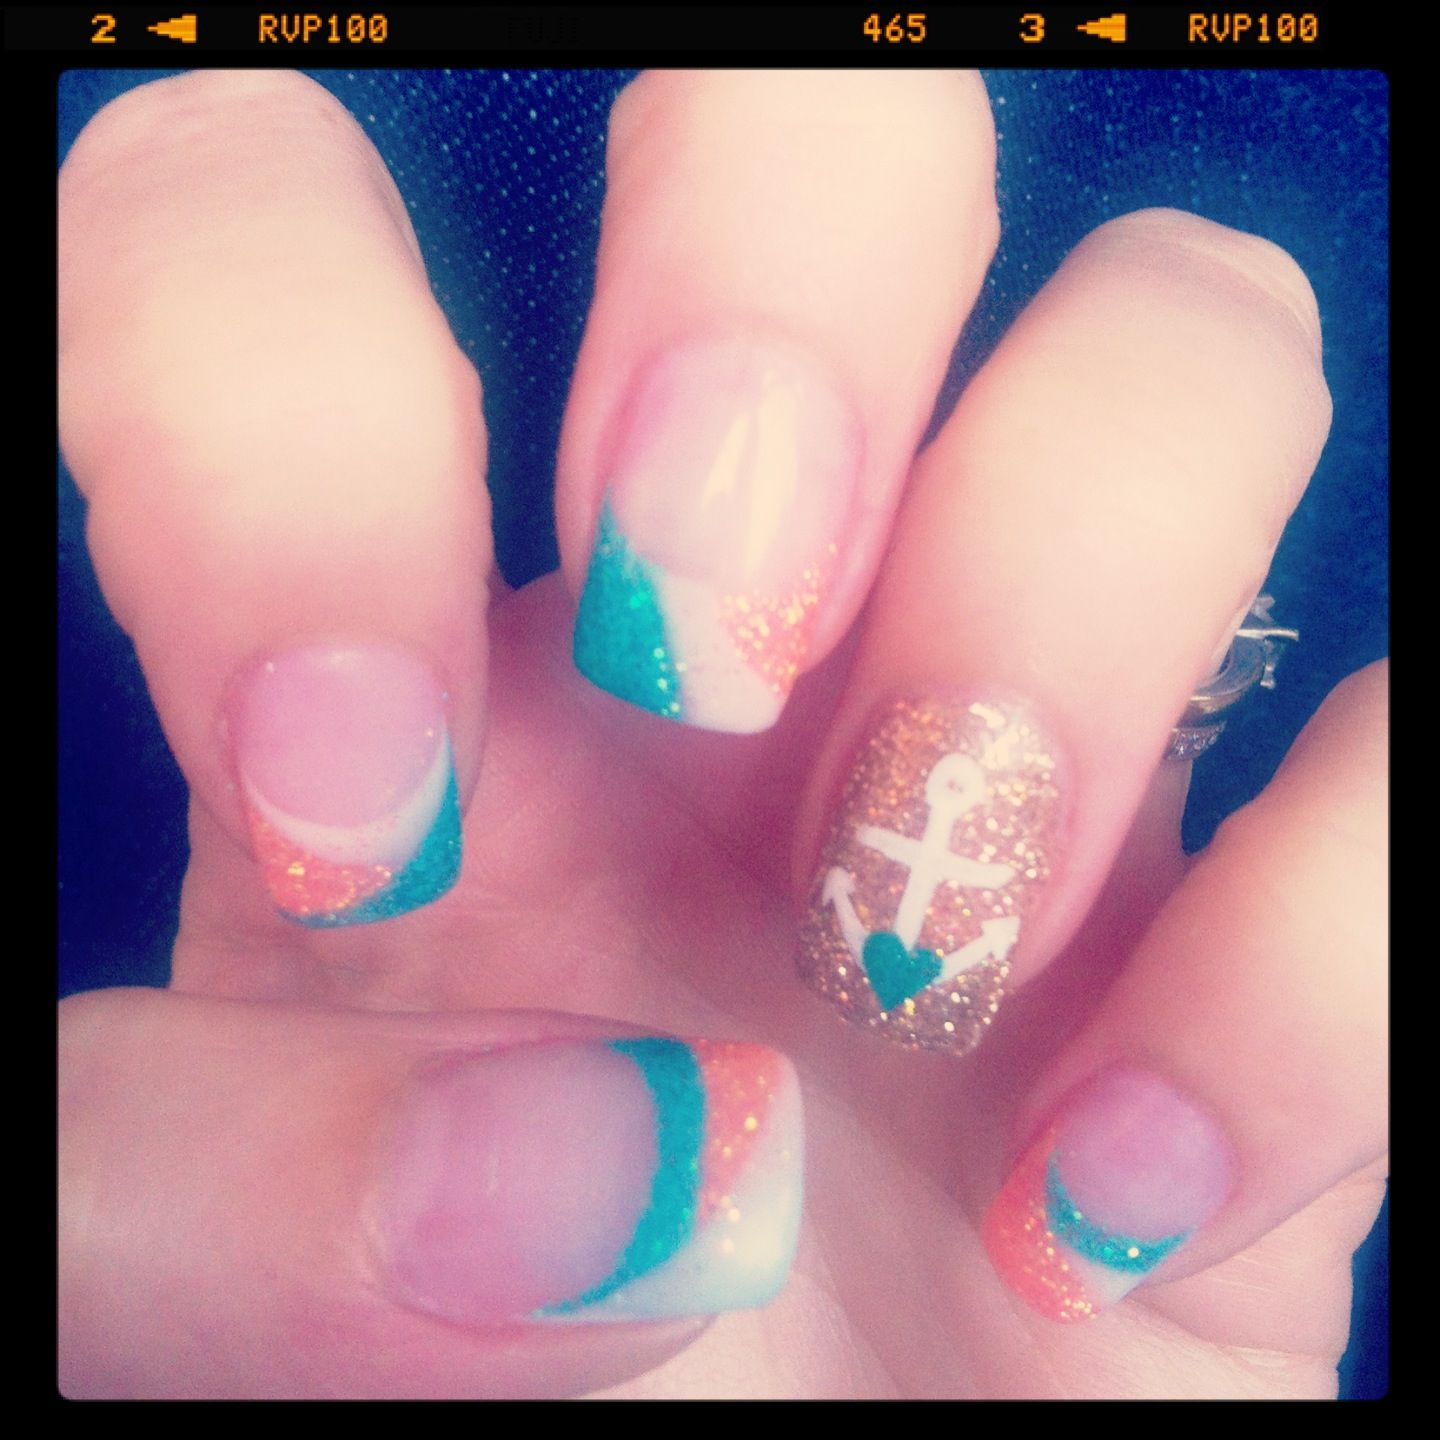 Anchor gel nails | Hair&Makeup&Nails | Pinterest